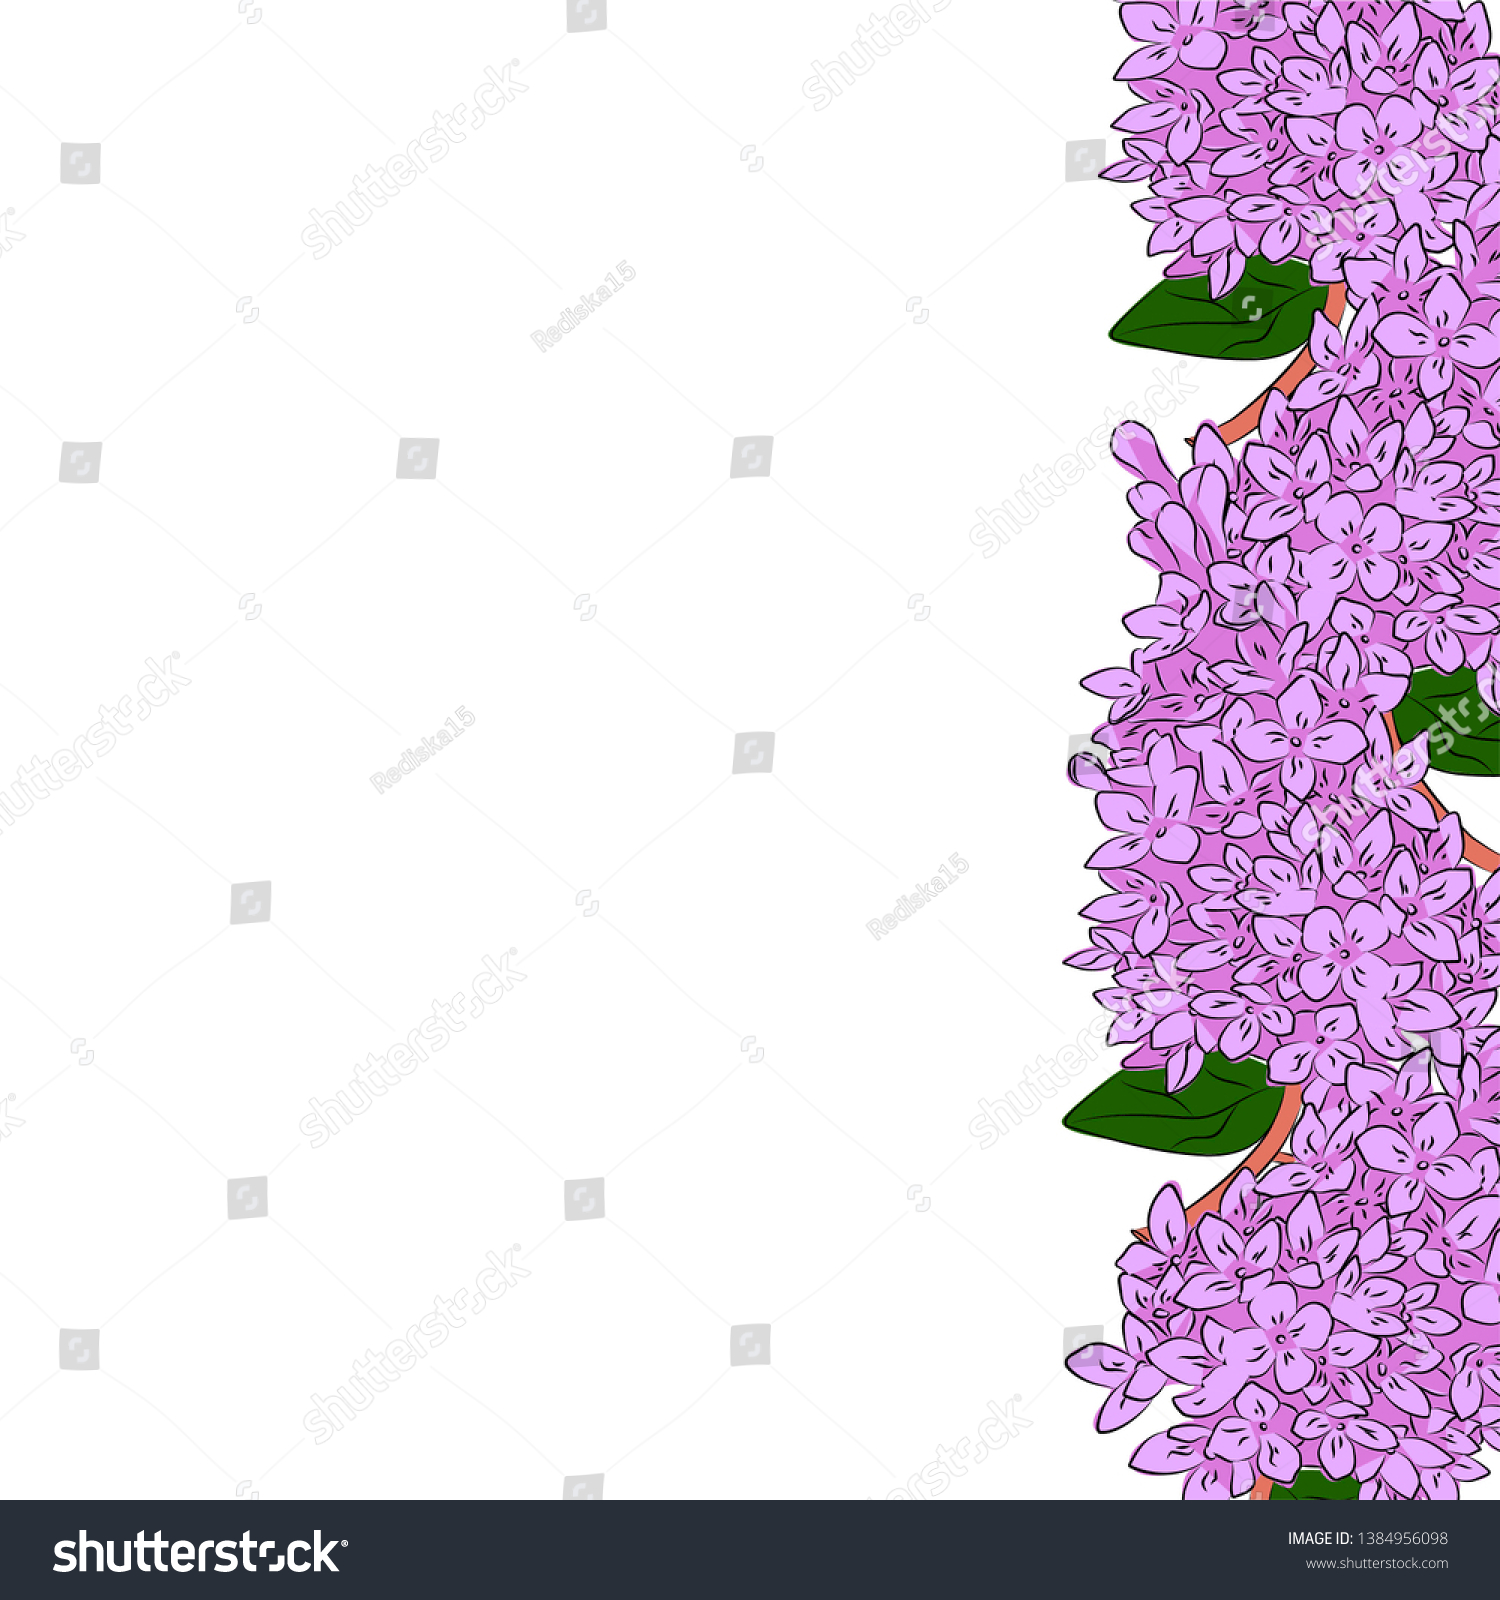 Simple Drawing Frame Flowers Stock Illustration 1384956098